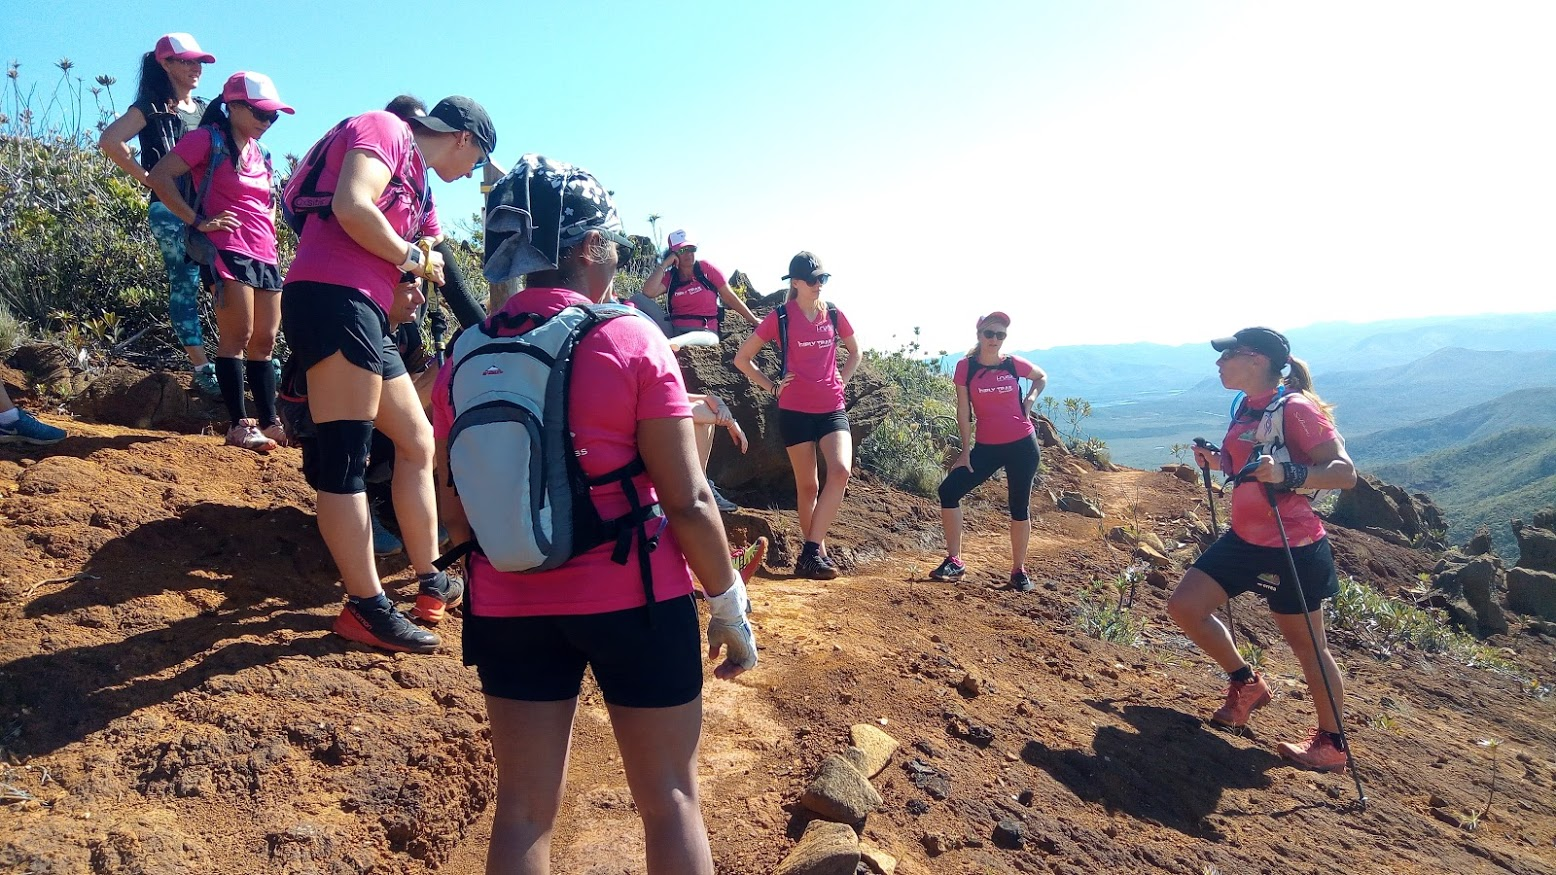 girly-trail-session-nouvelle-caledonie-11